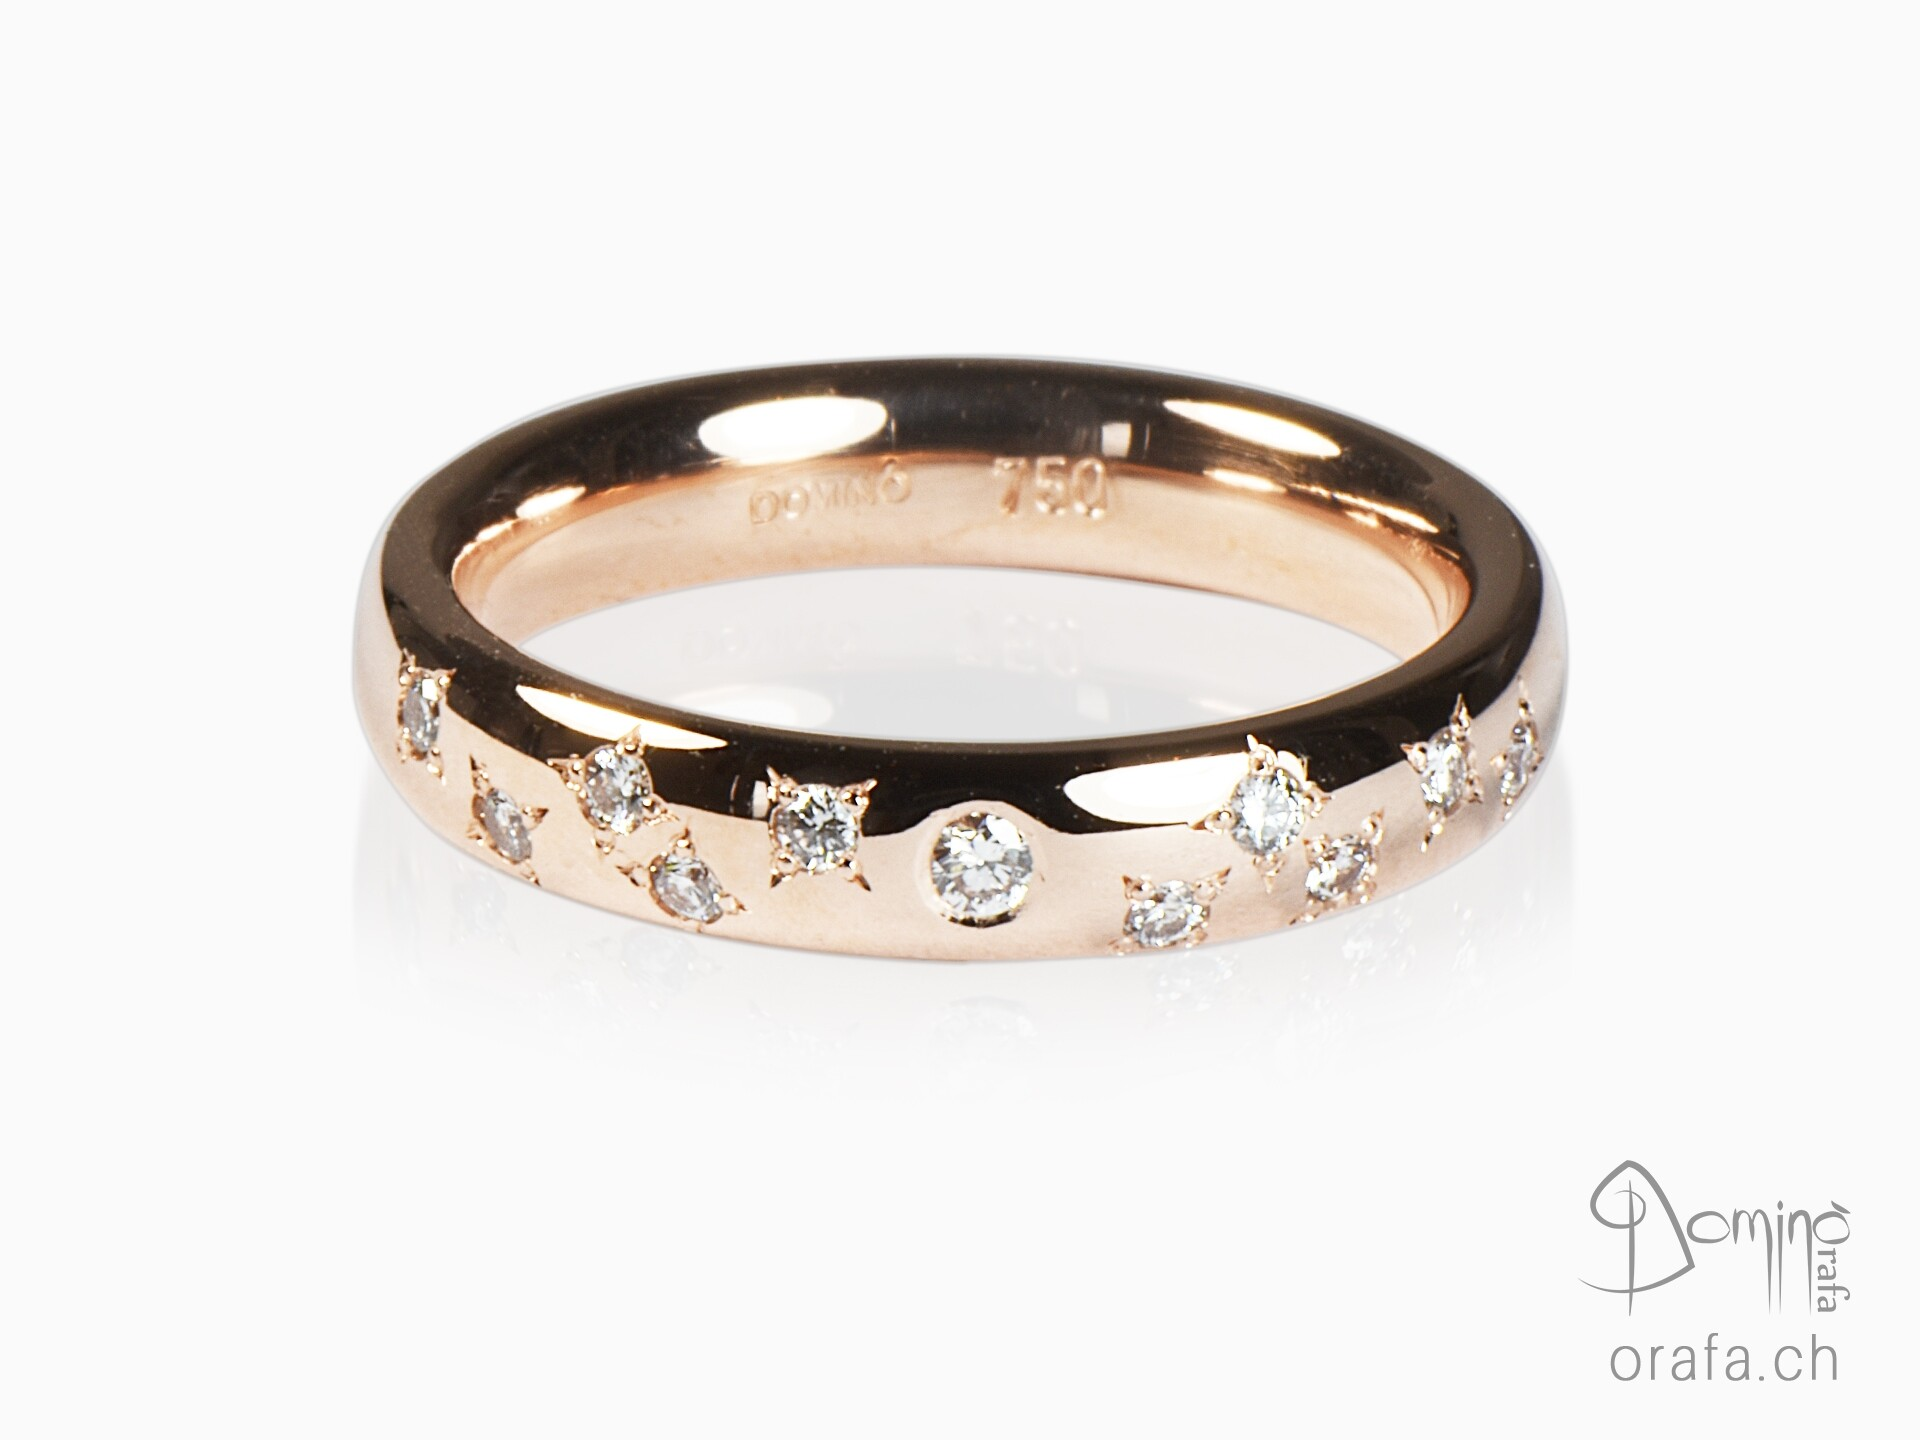 Central diamond and Stars diamonds ring